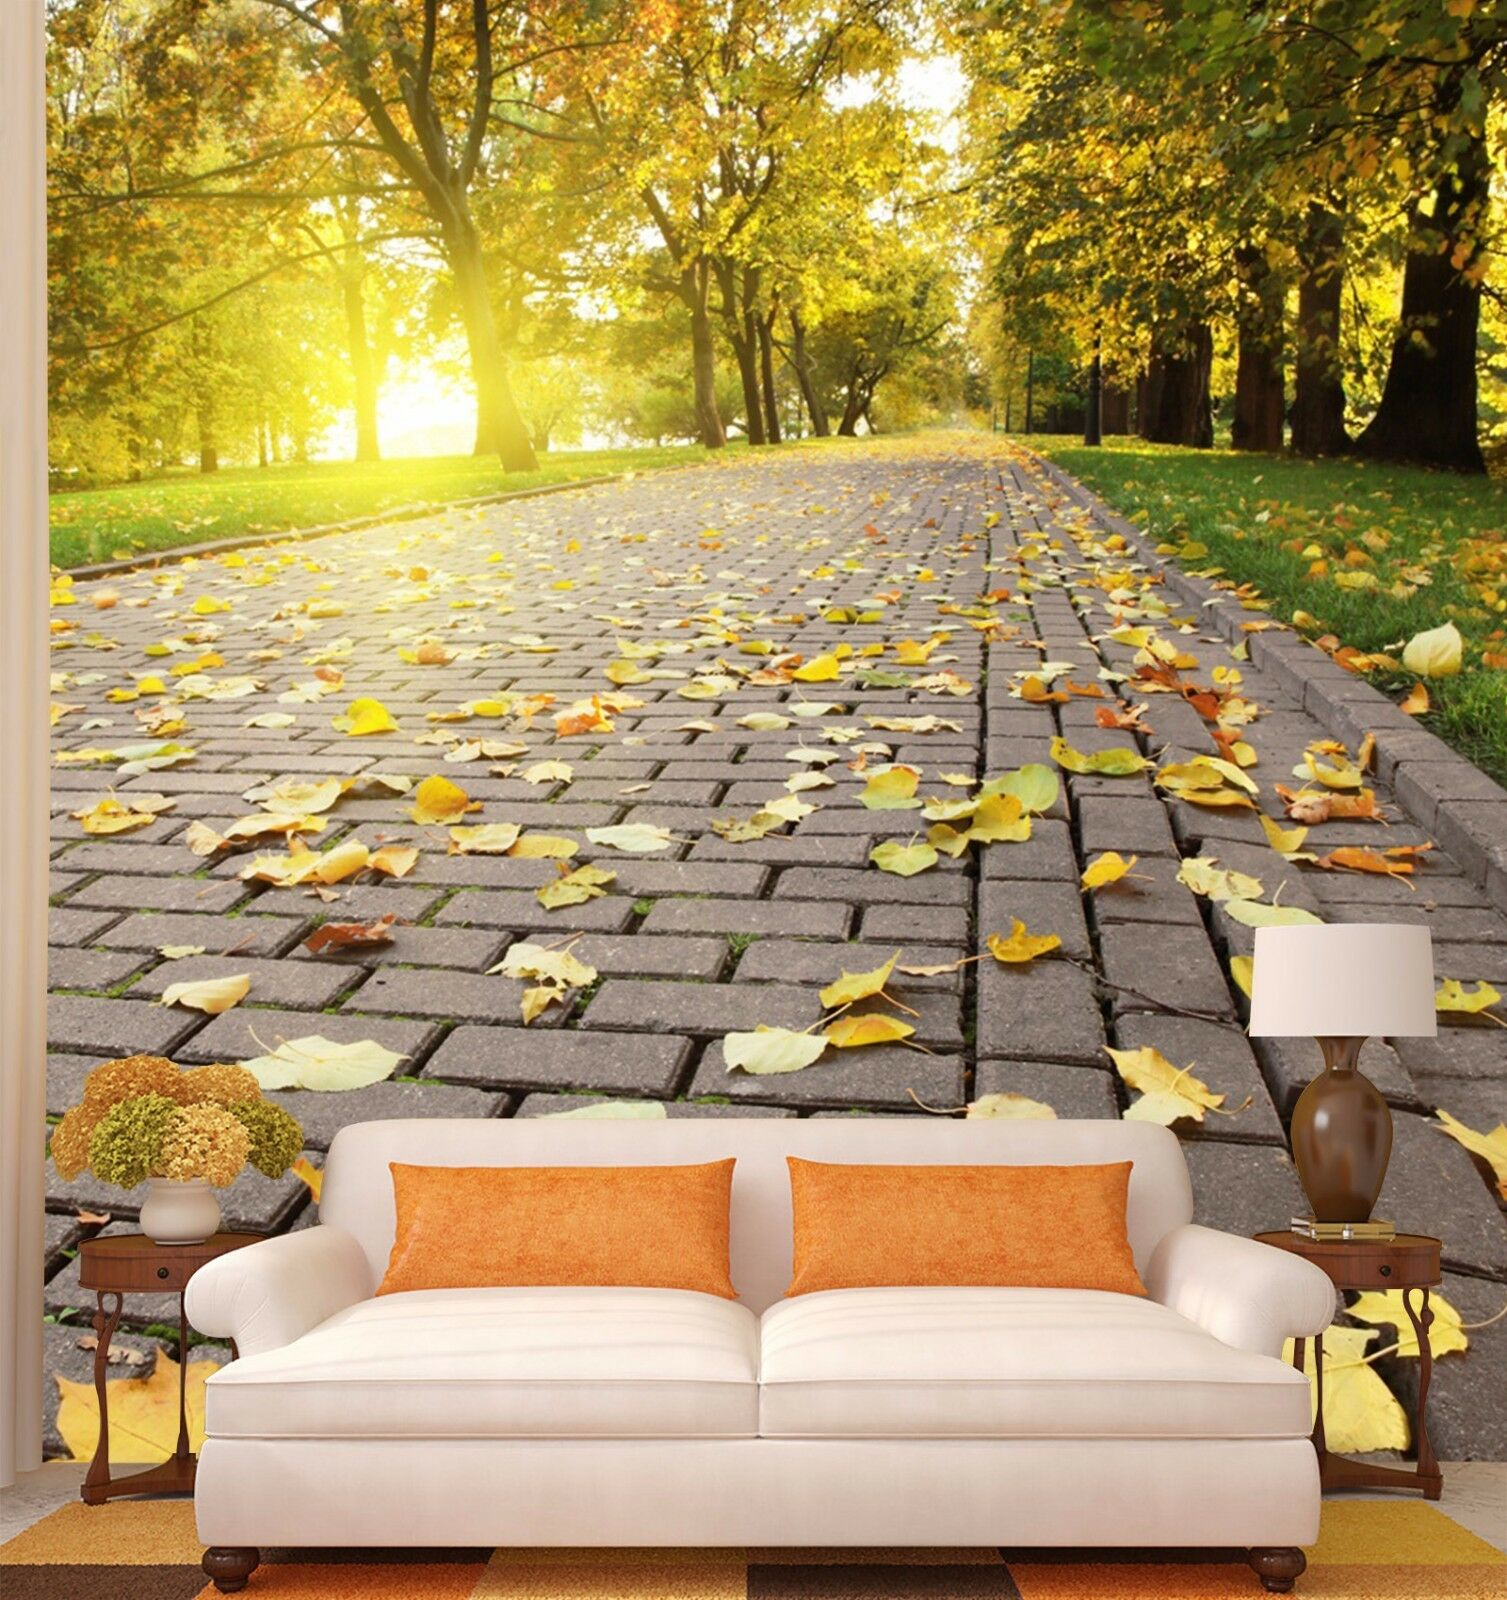 3D Leaves Road 5 Wallpaper Murals Wall Print Wallpaper Mural AJ WALL AU Kyra